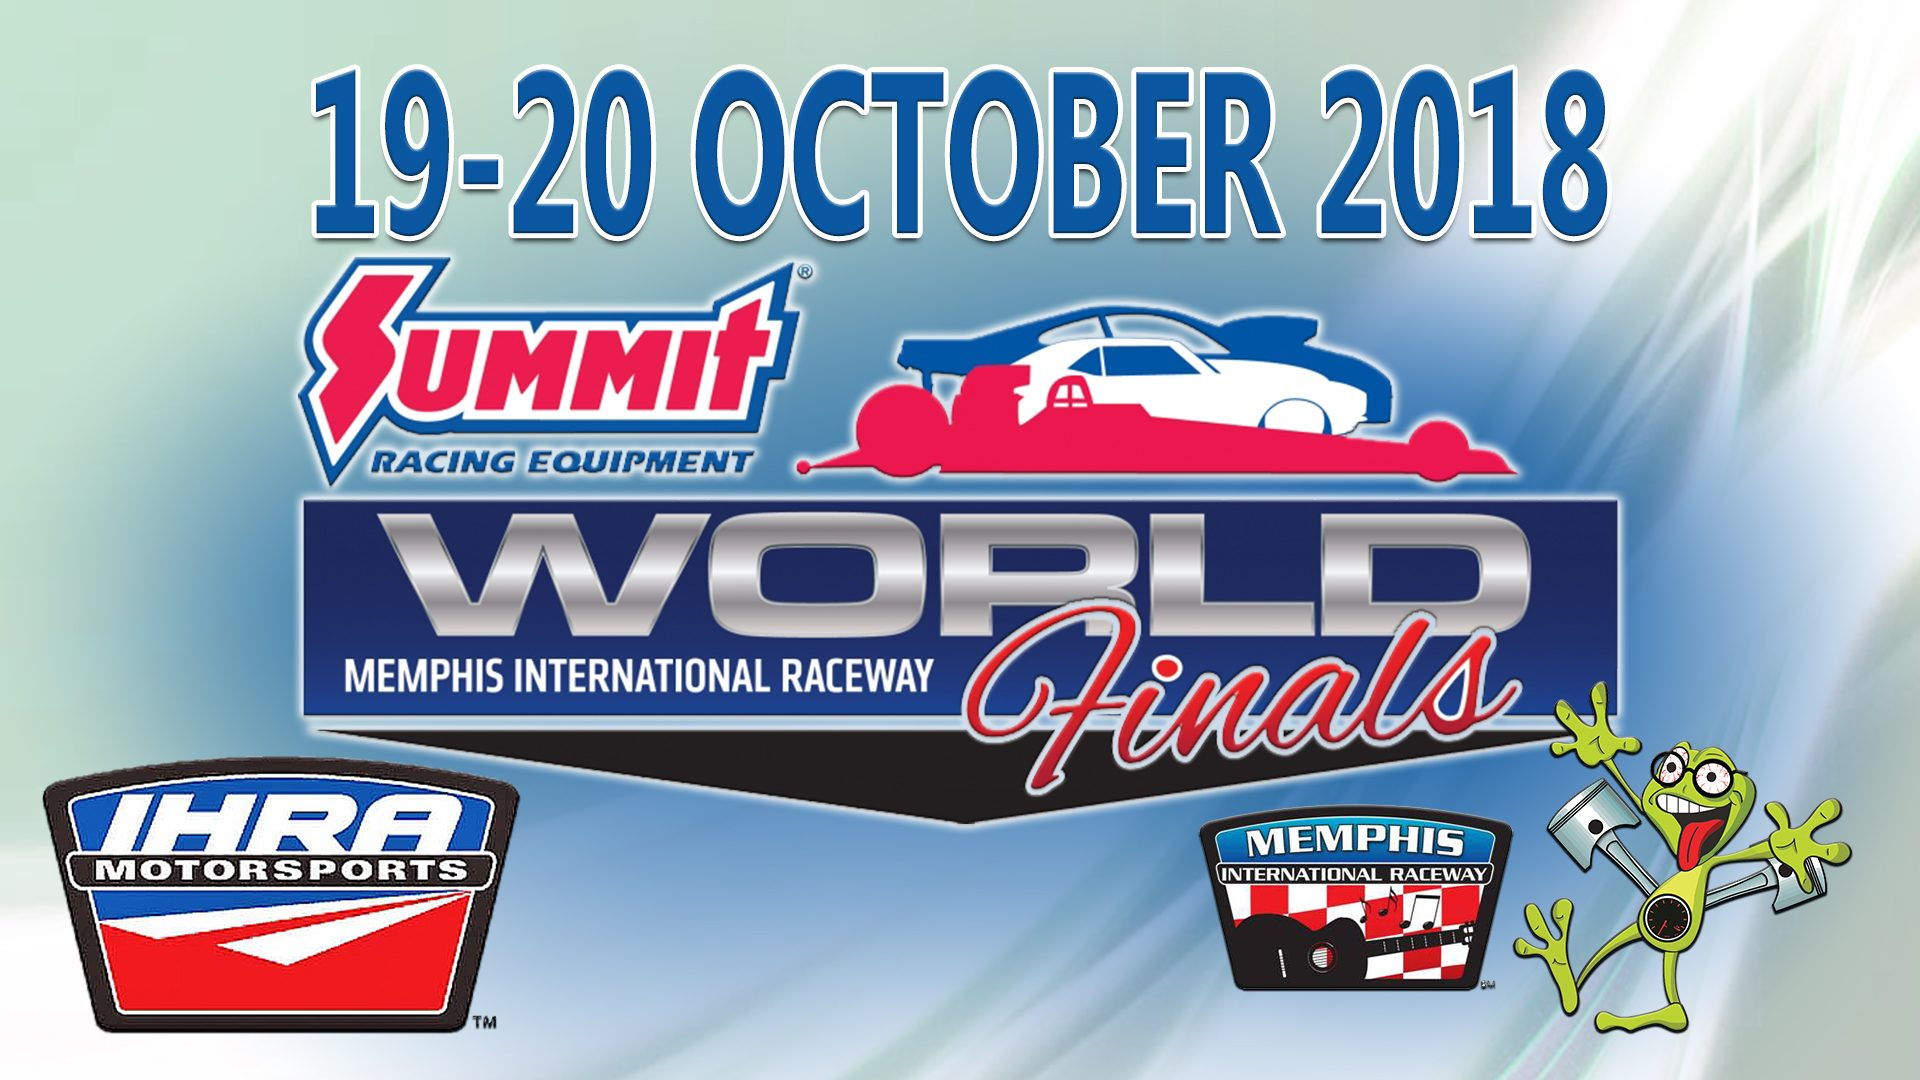 OCT19-20_IHRA WORLD FINAL2018_Wps3